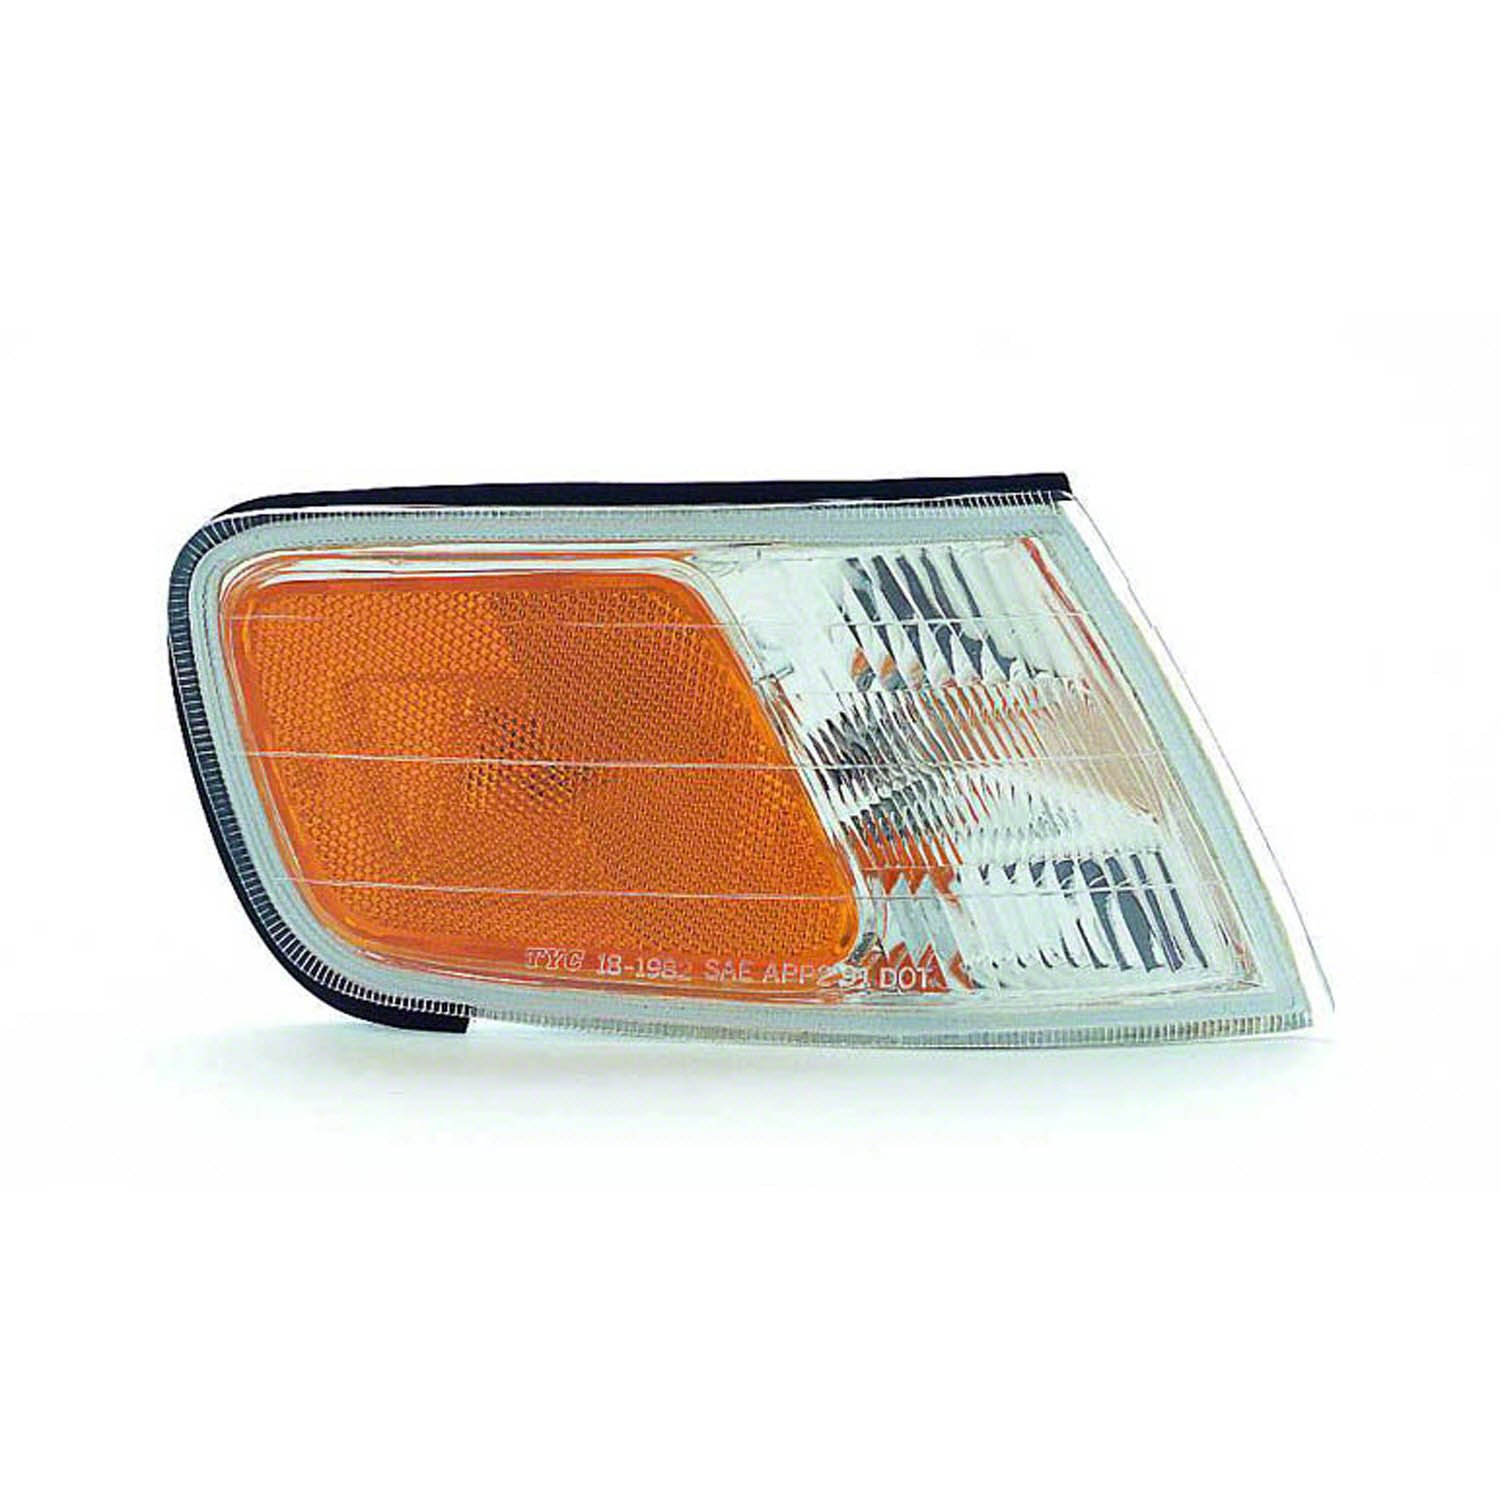 PASSENGER SIDE CORNER LIGHT Honda Accord PARK/SIDE MARKER LIGHT; RH Headlights Depot HO2551109